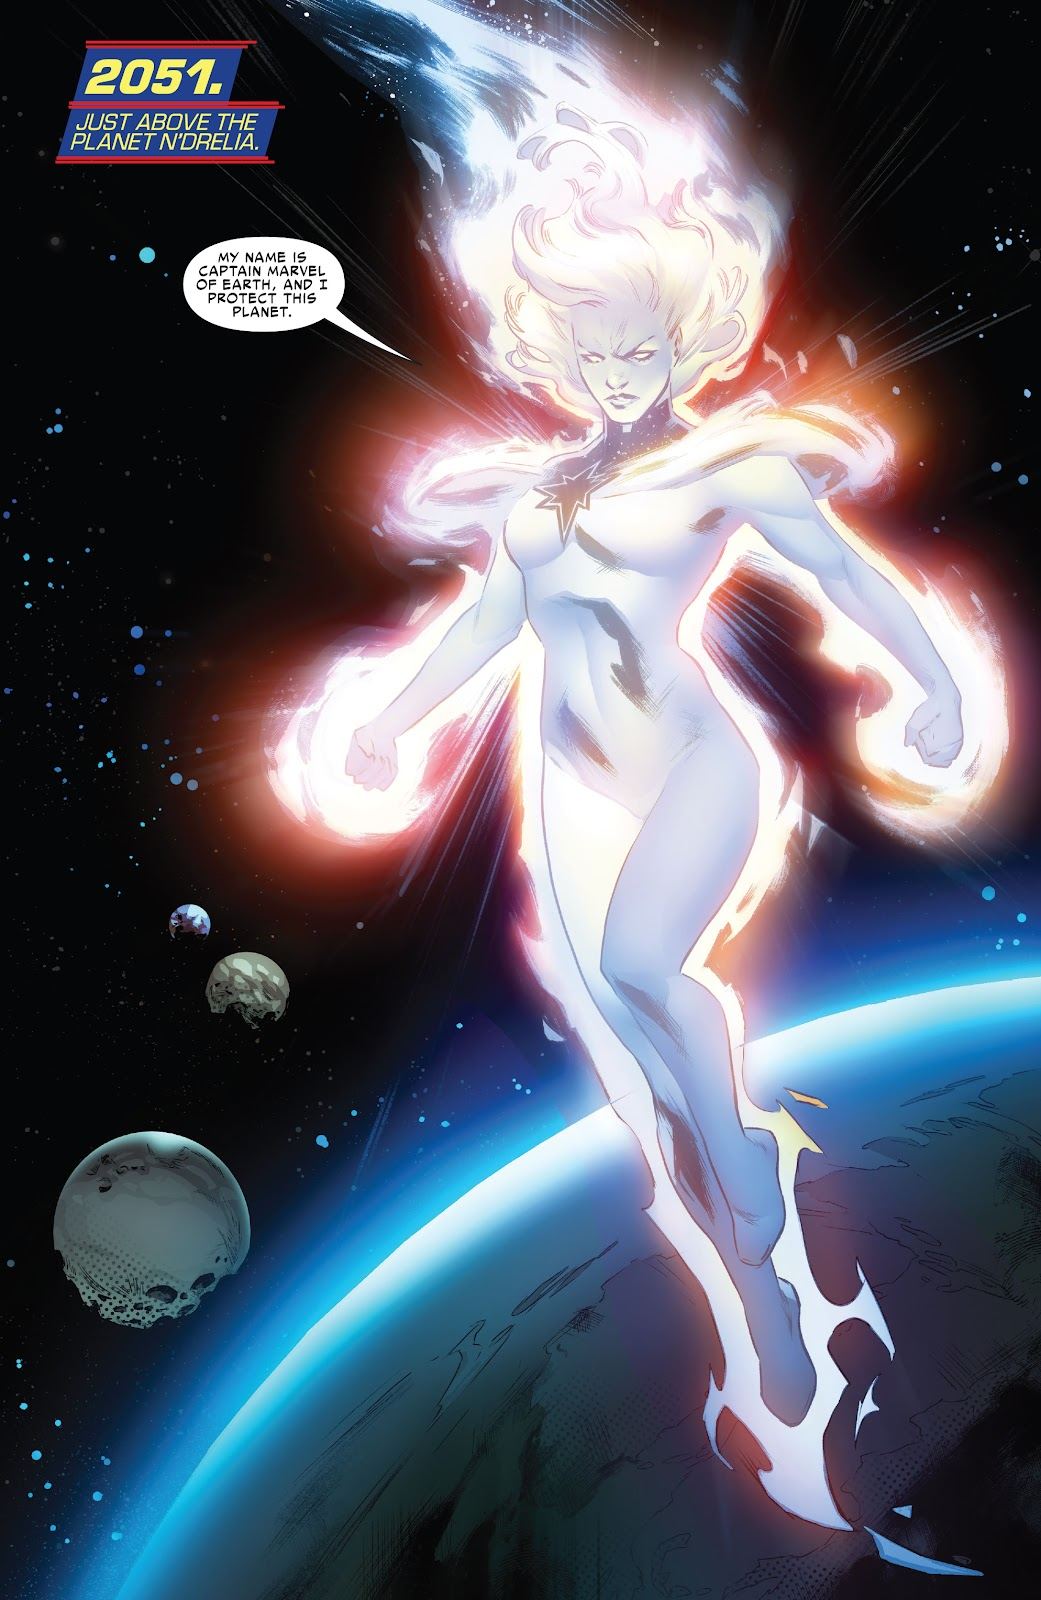 Read online Captain Marvel: The End comic -  Issue # Full - 2